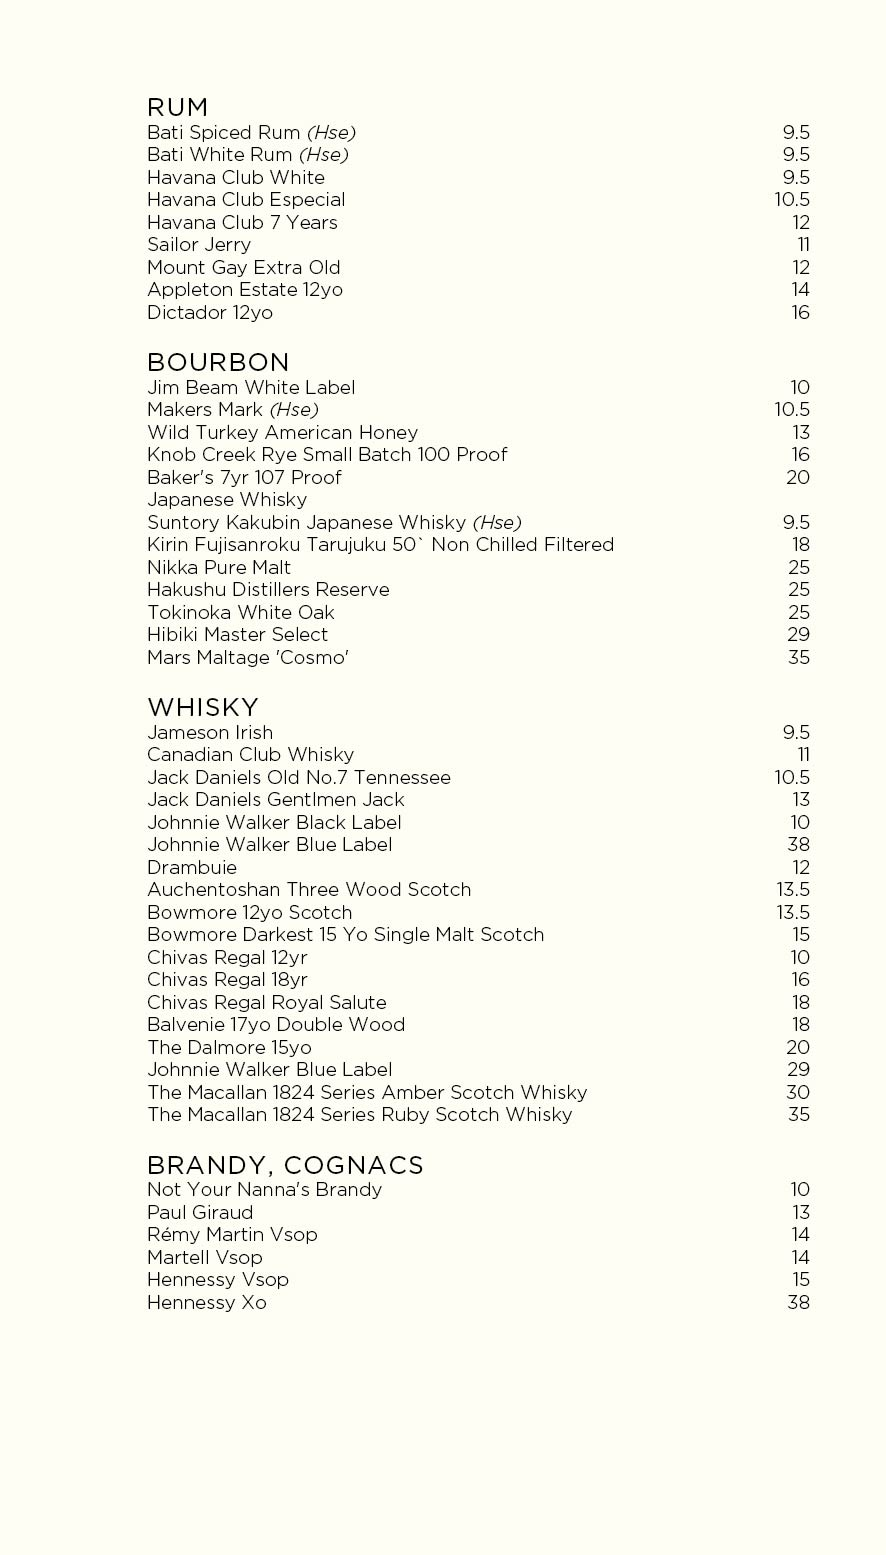 150x263mm_WineList_8point_01-06.jpg